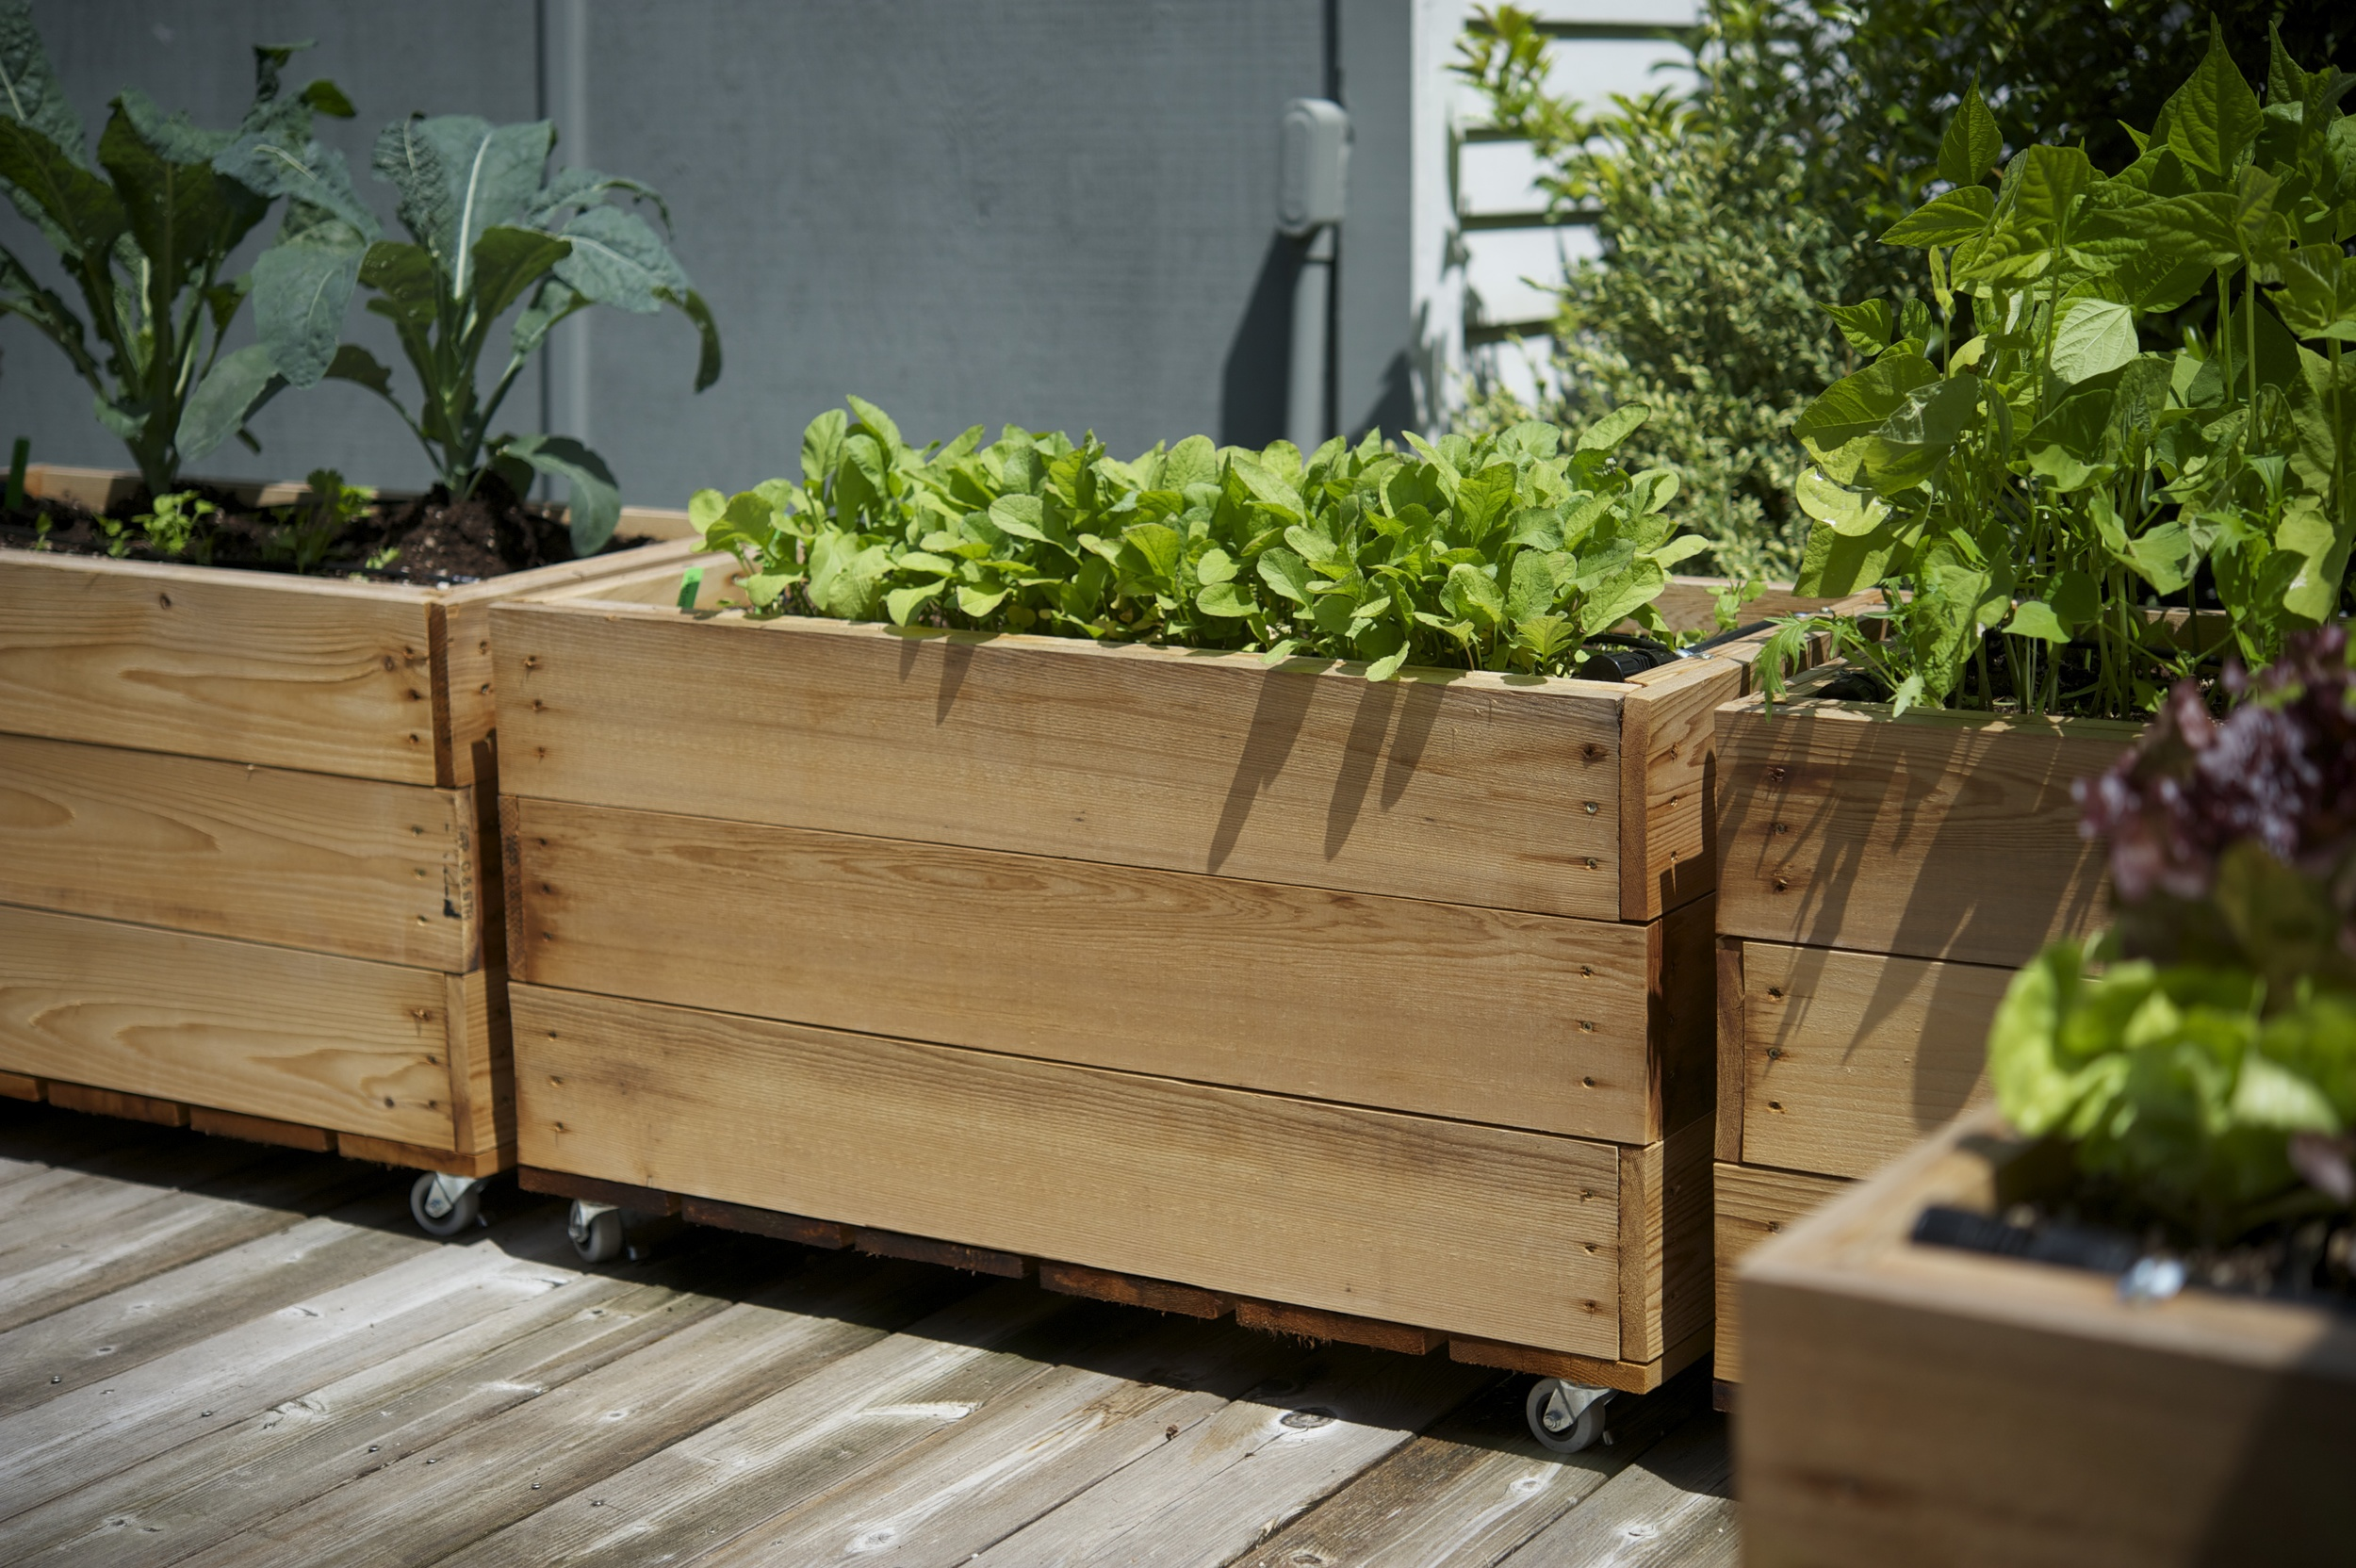 2'x3' small cedar beds   - p  hoto by Seattle Urban Farm Company